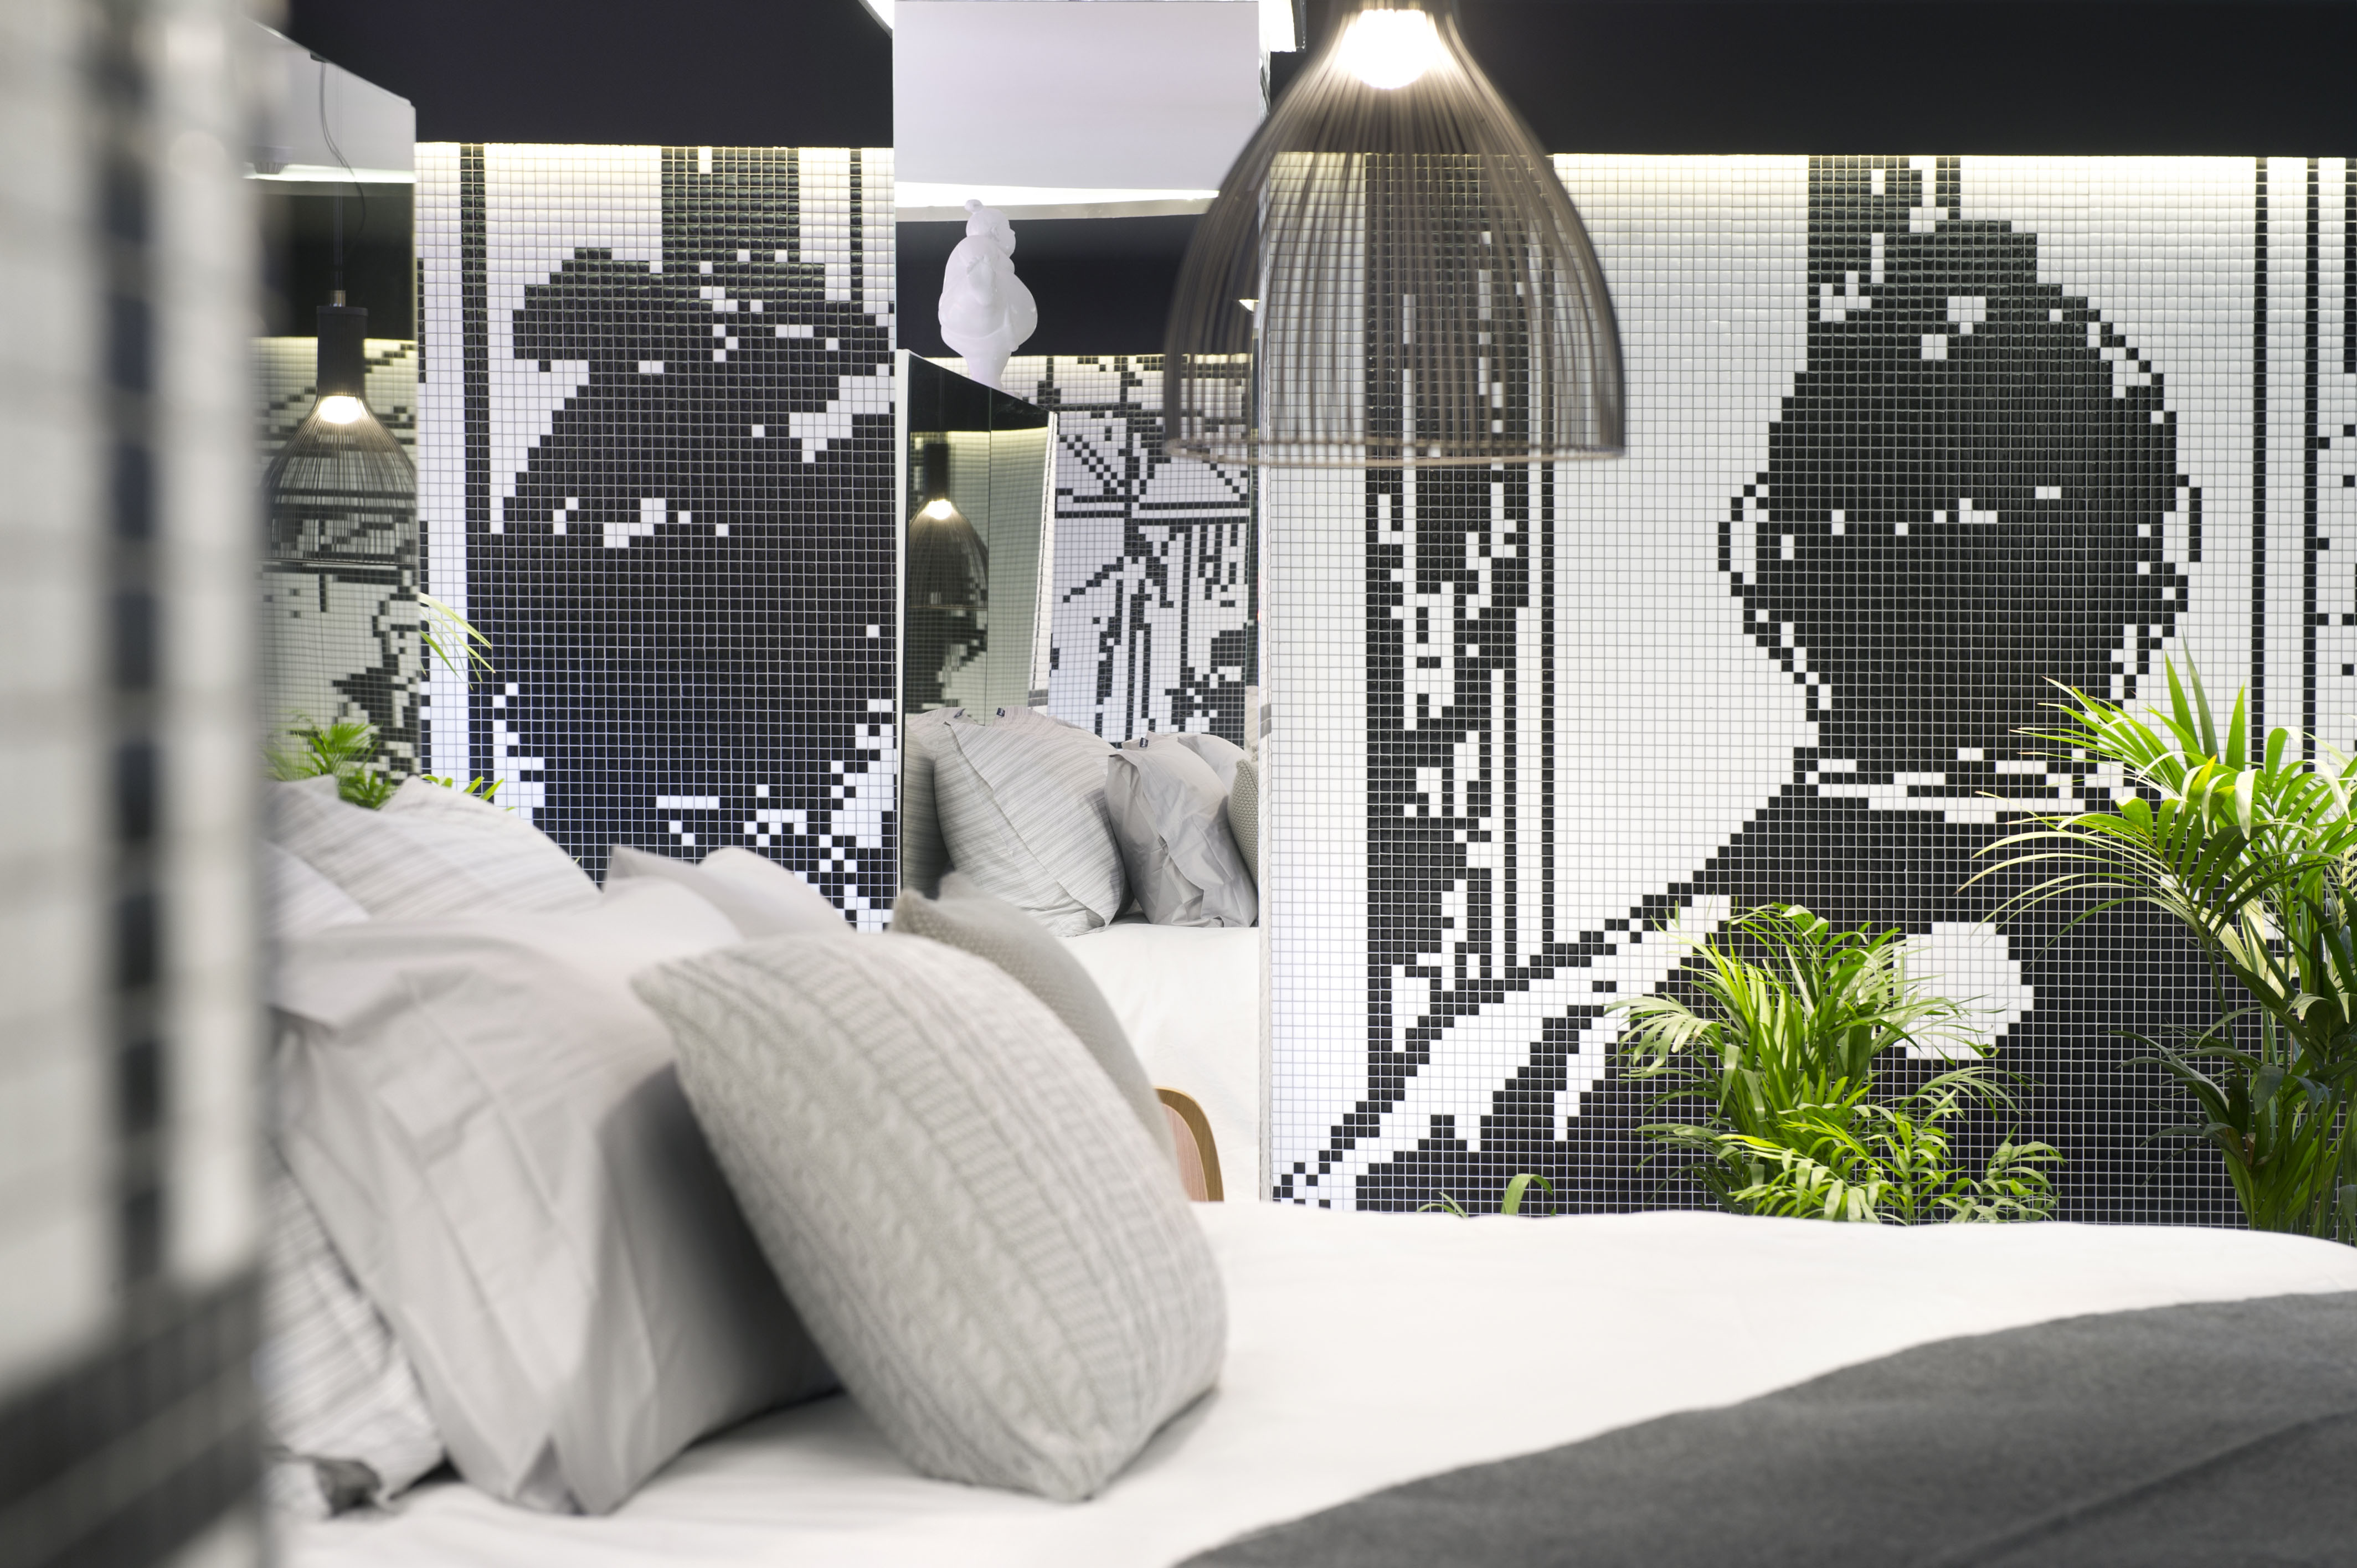 seguimos sorprendi ndonos con casadecor 2015 en madrid. Black Bedroom Furniture Sets. Home Design Ideas